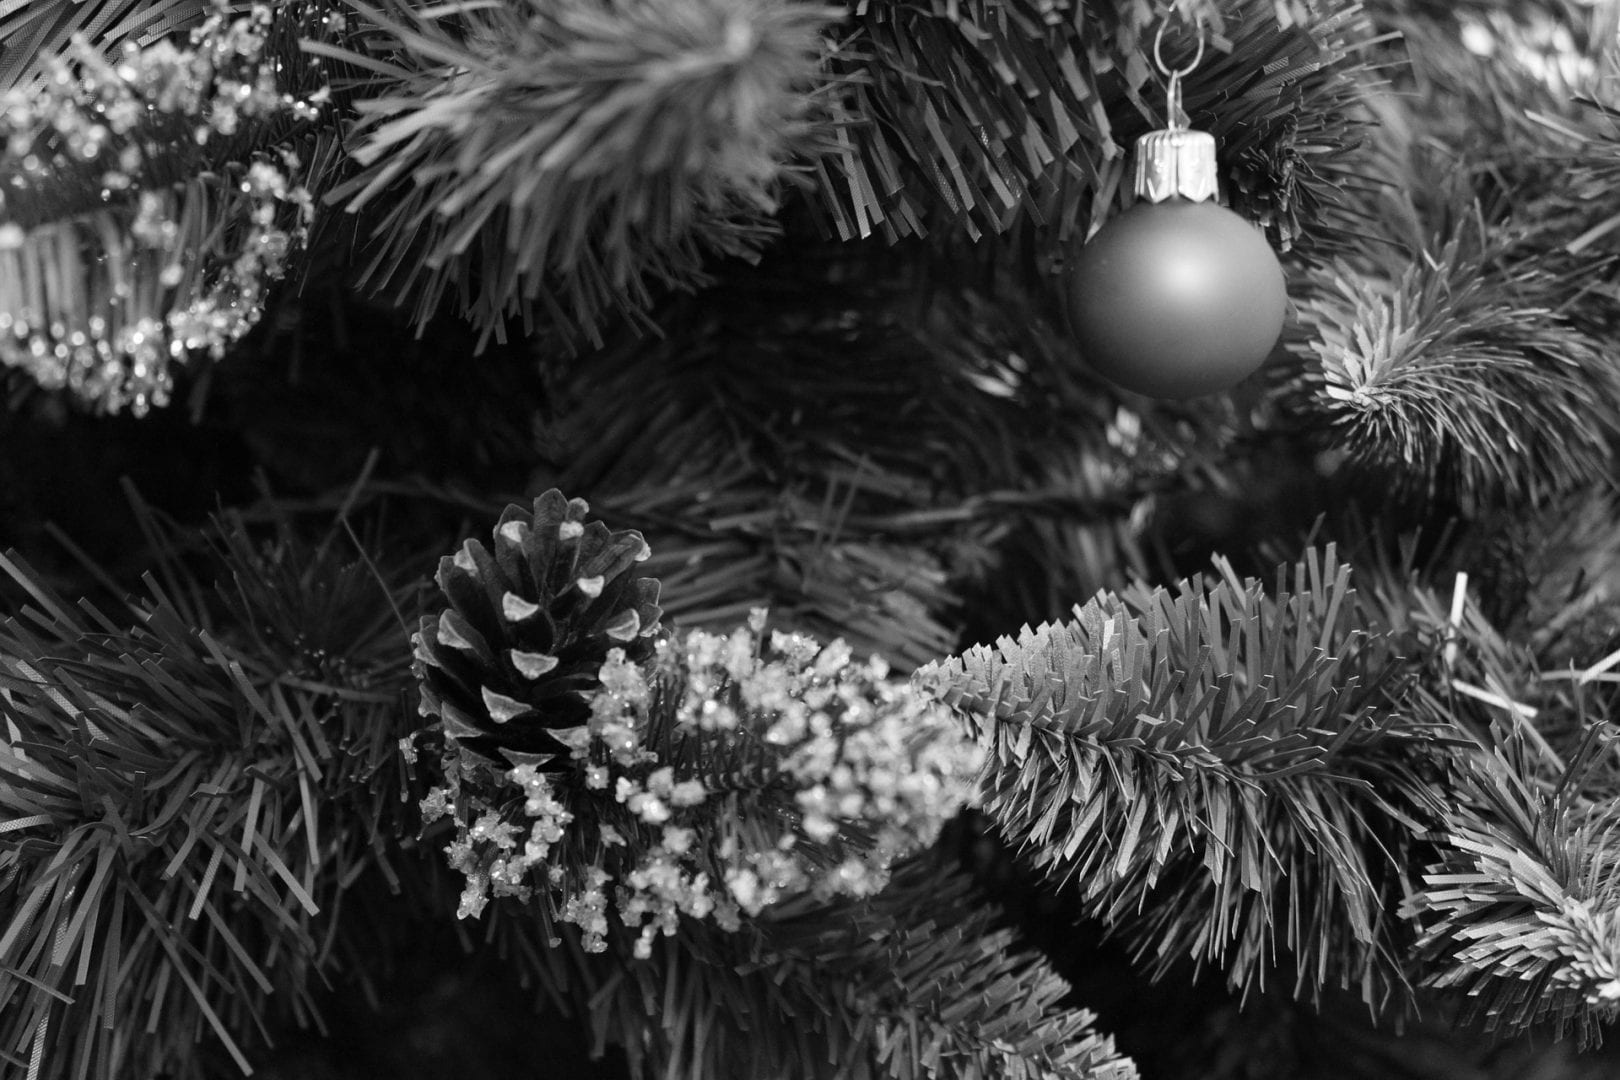 a black and white close up photo of a pine tree and a round ornament